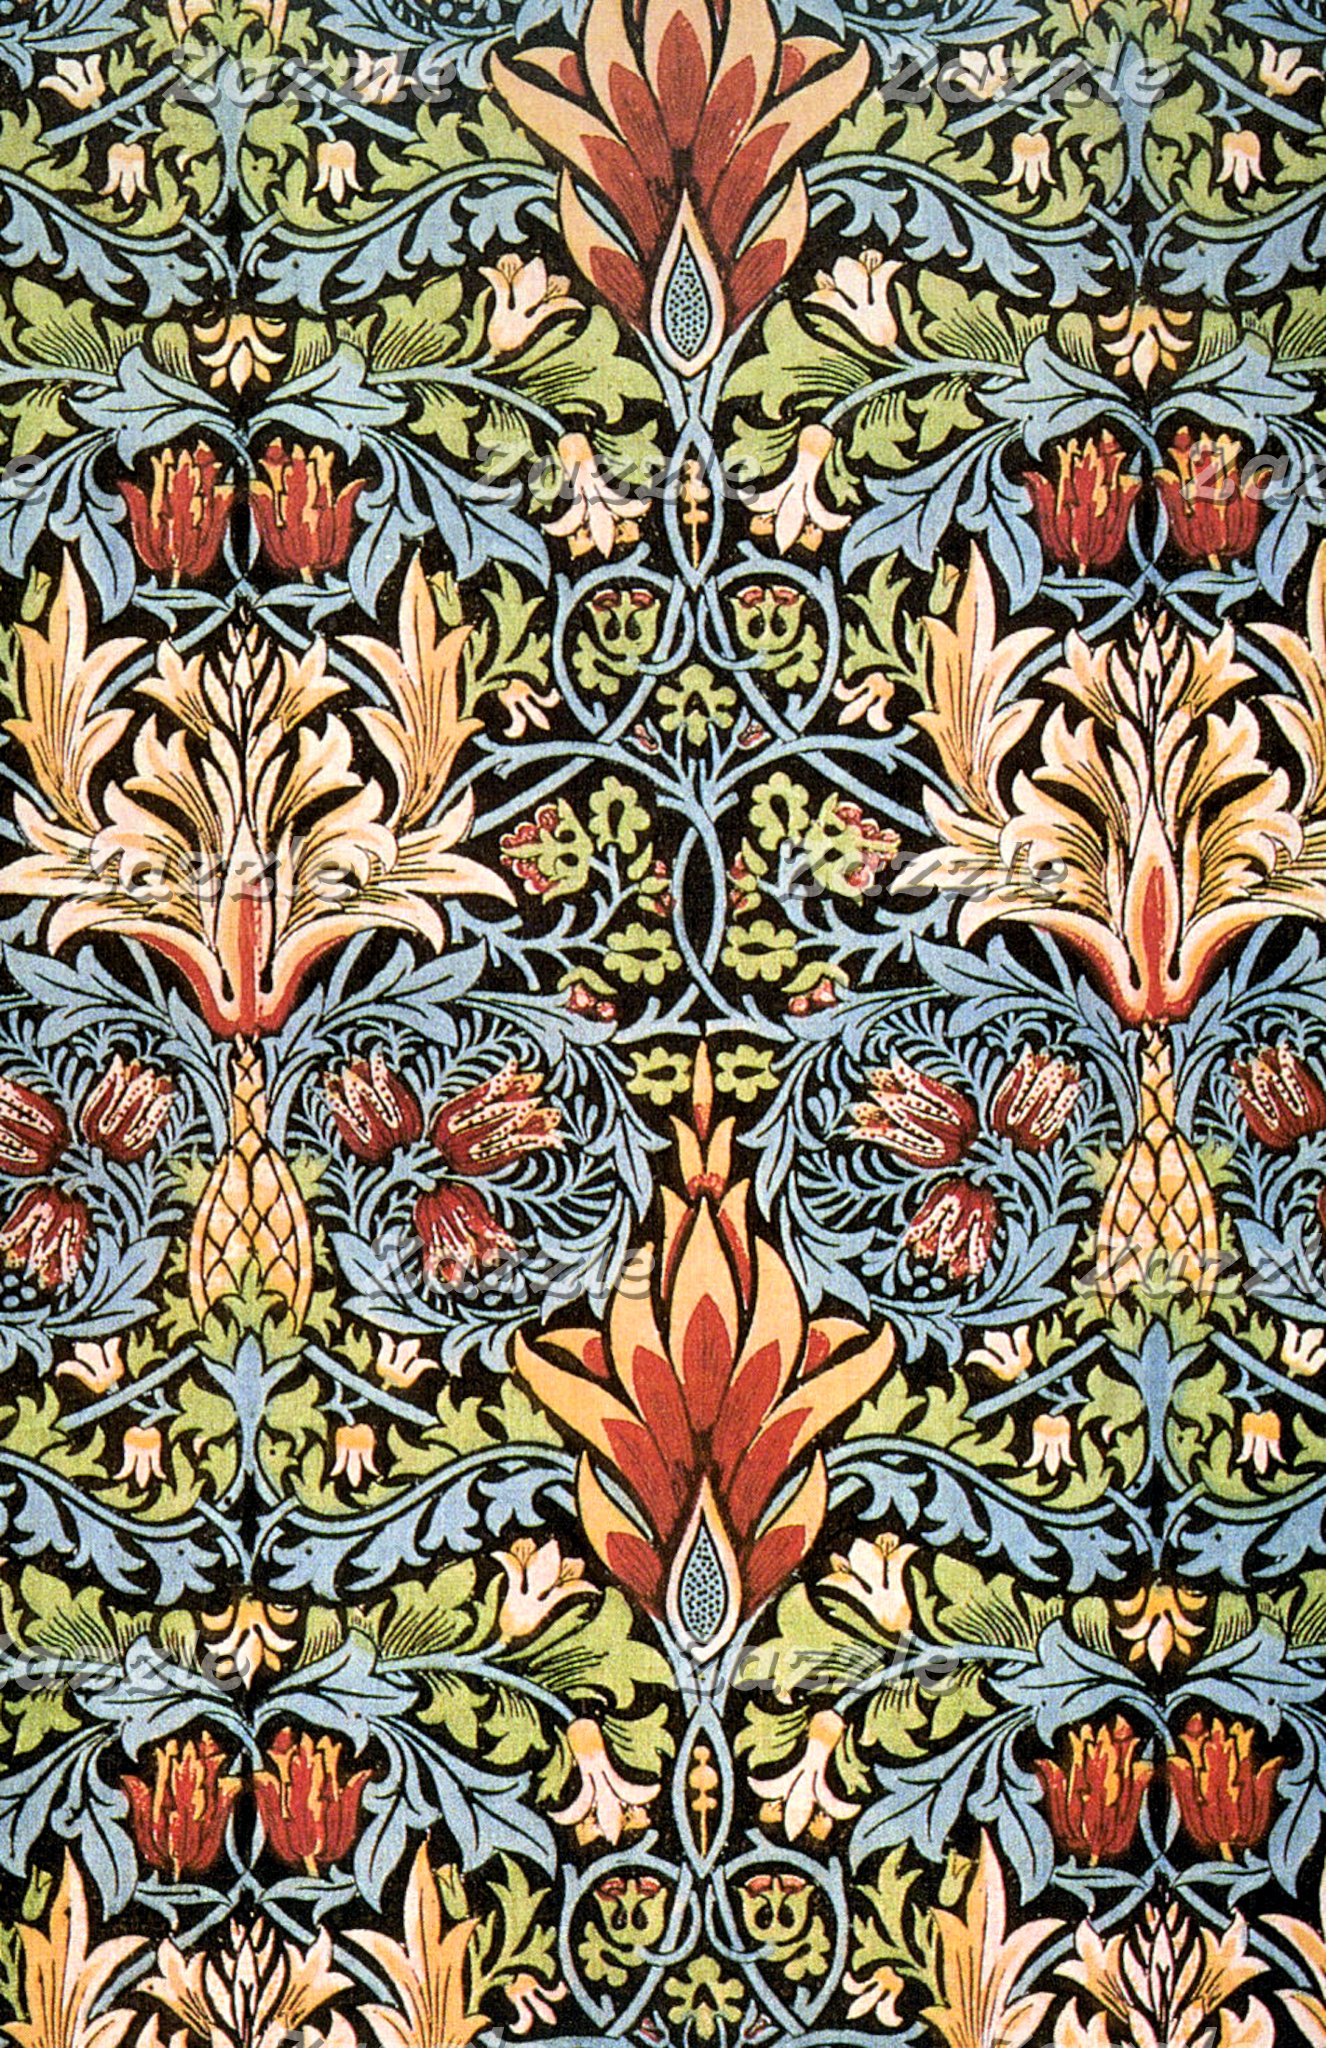 William Morris Snakeshead Design